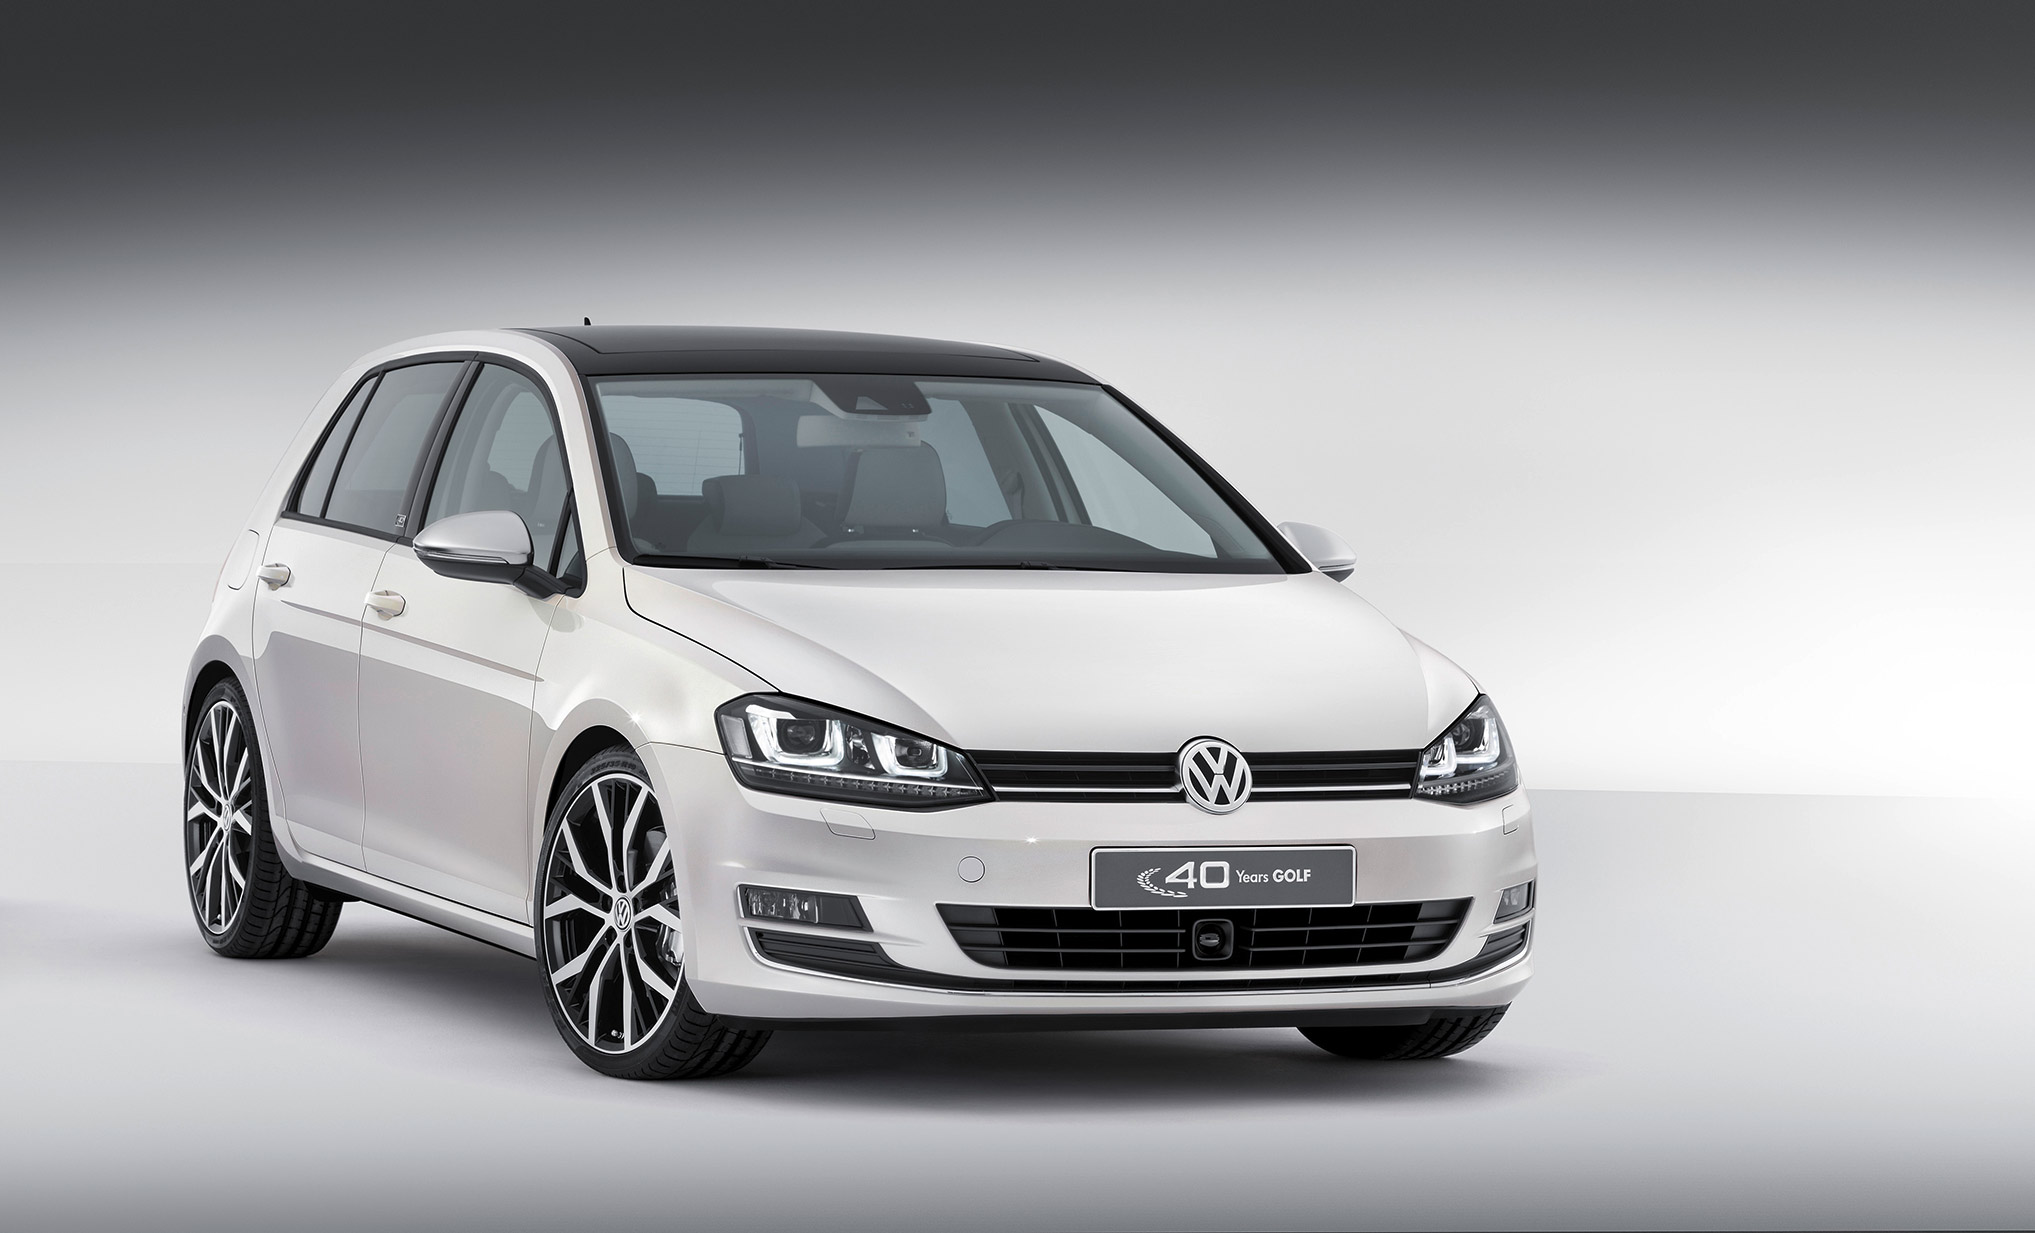 volkswagen golf edition 2014 4 600x363